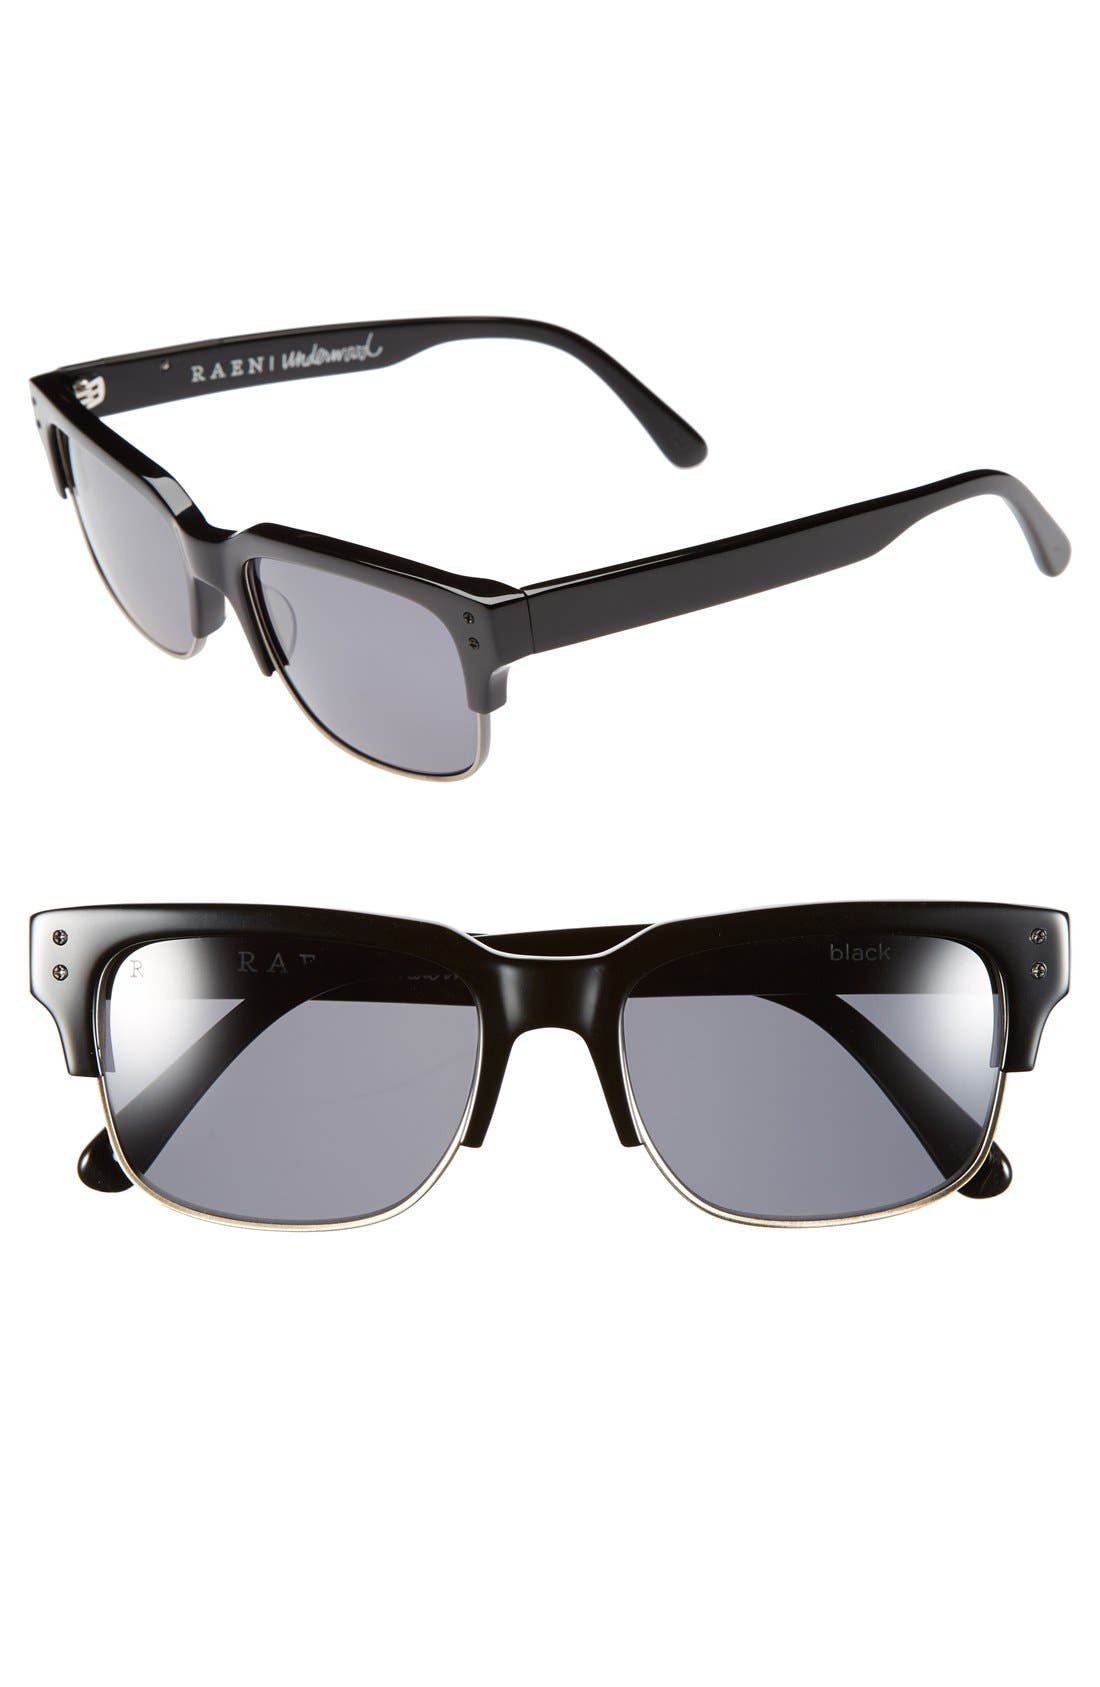 Alternate Image 1 Selected - RAEN 'Underwood' 53mm Polarized Sunglasses